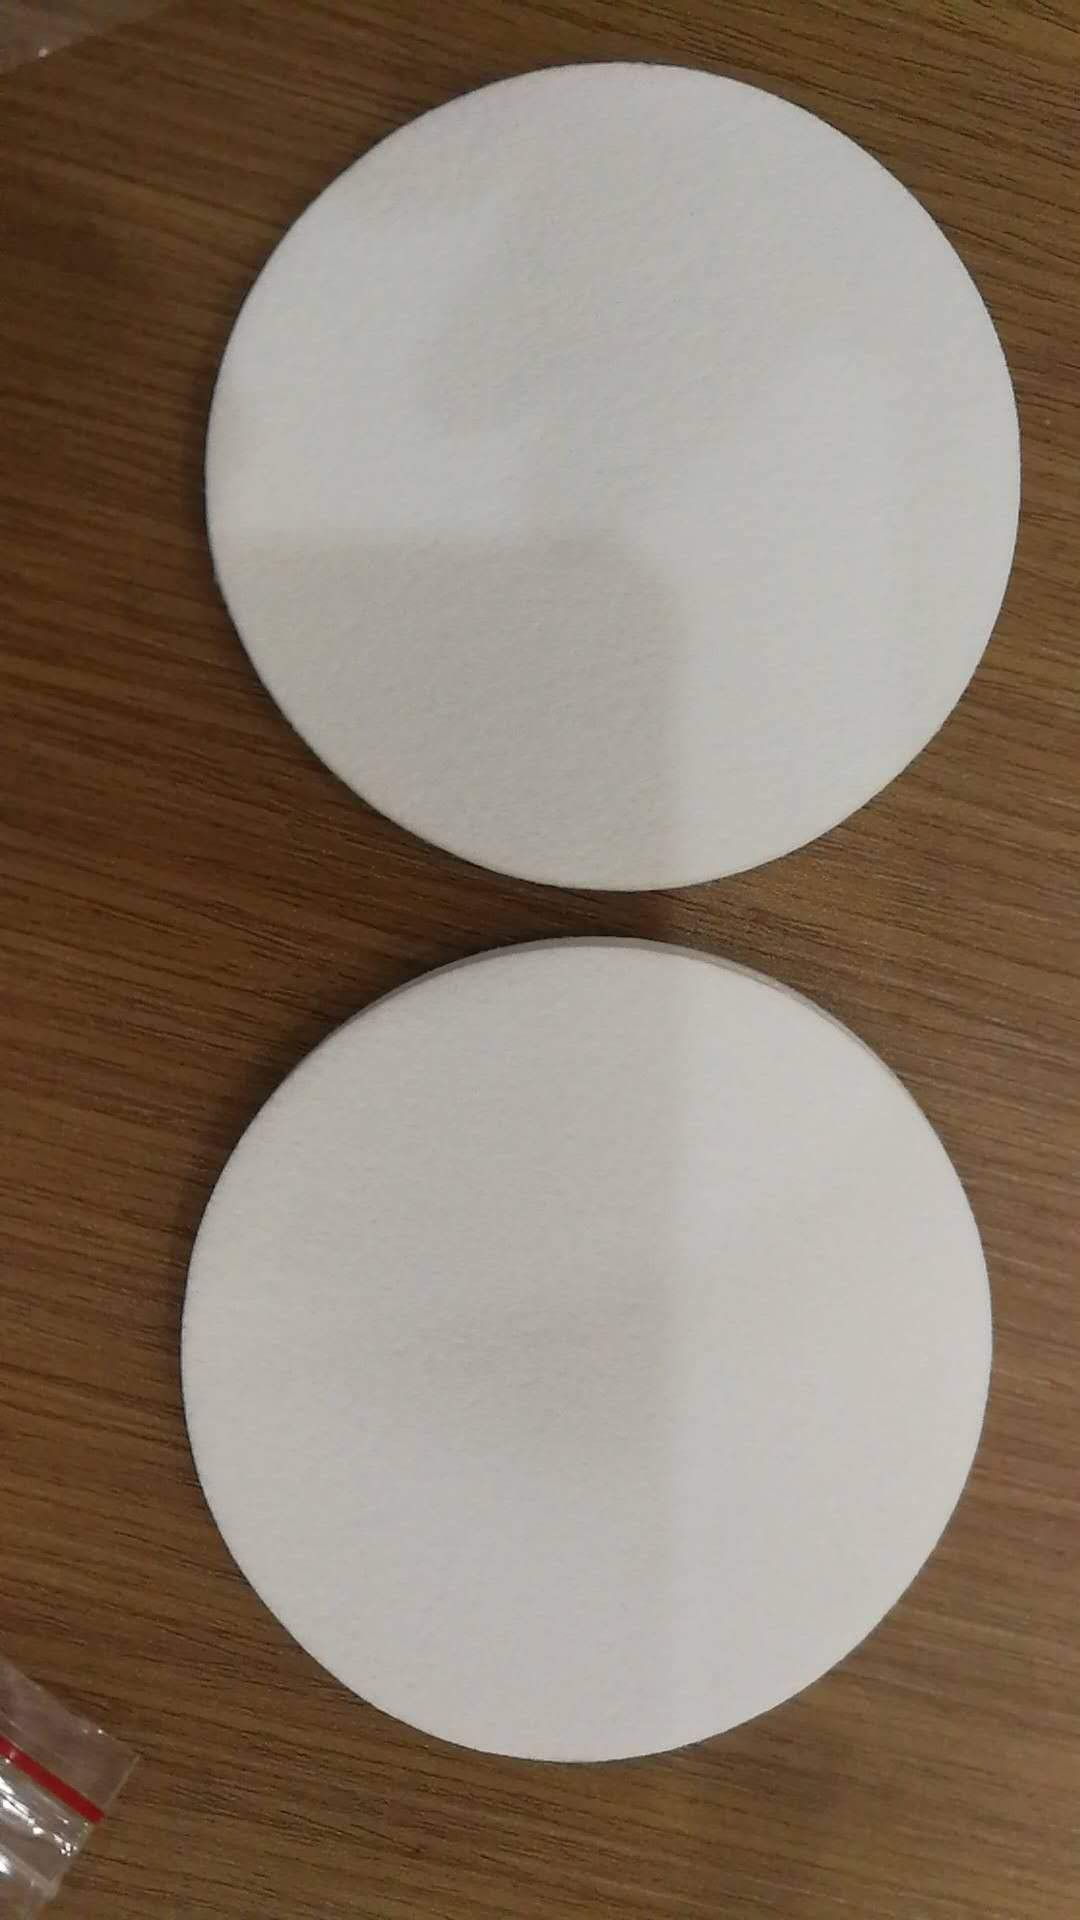 Synthetic Filter Discs 70mm for a Buchner Funnel and fit''Regular Mouth'' Size Used for Mushroom Cultivation (24)